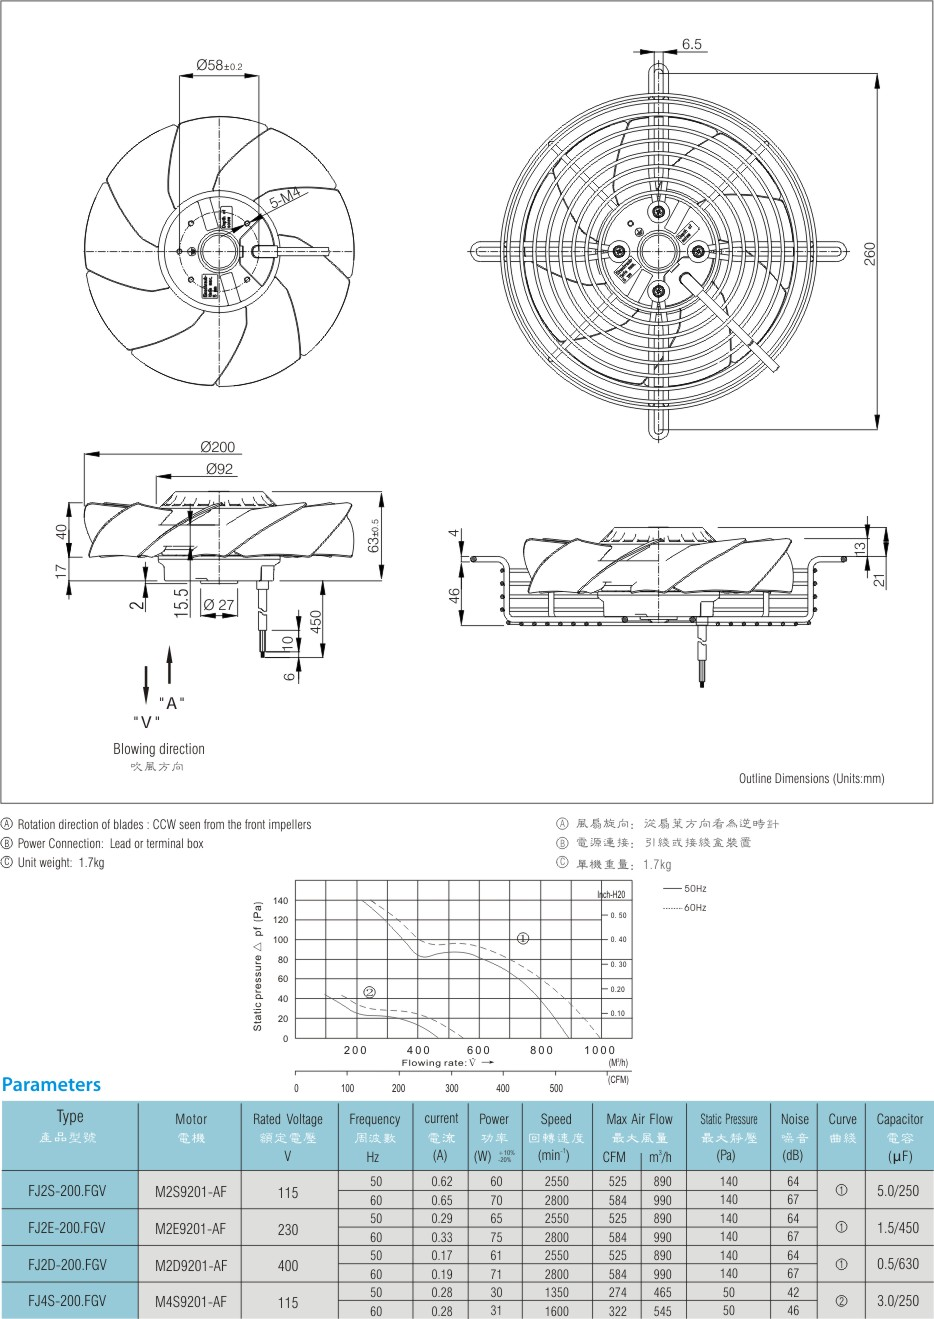 single phase external rotor motor fan poultry cooling fans 200mm